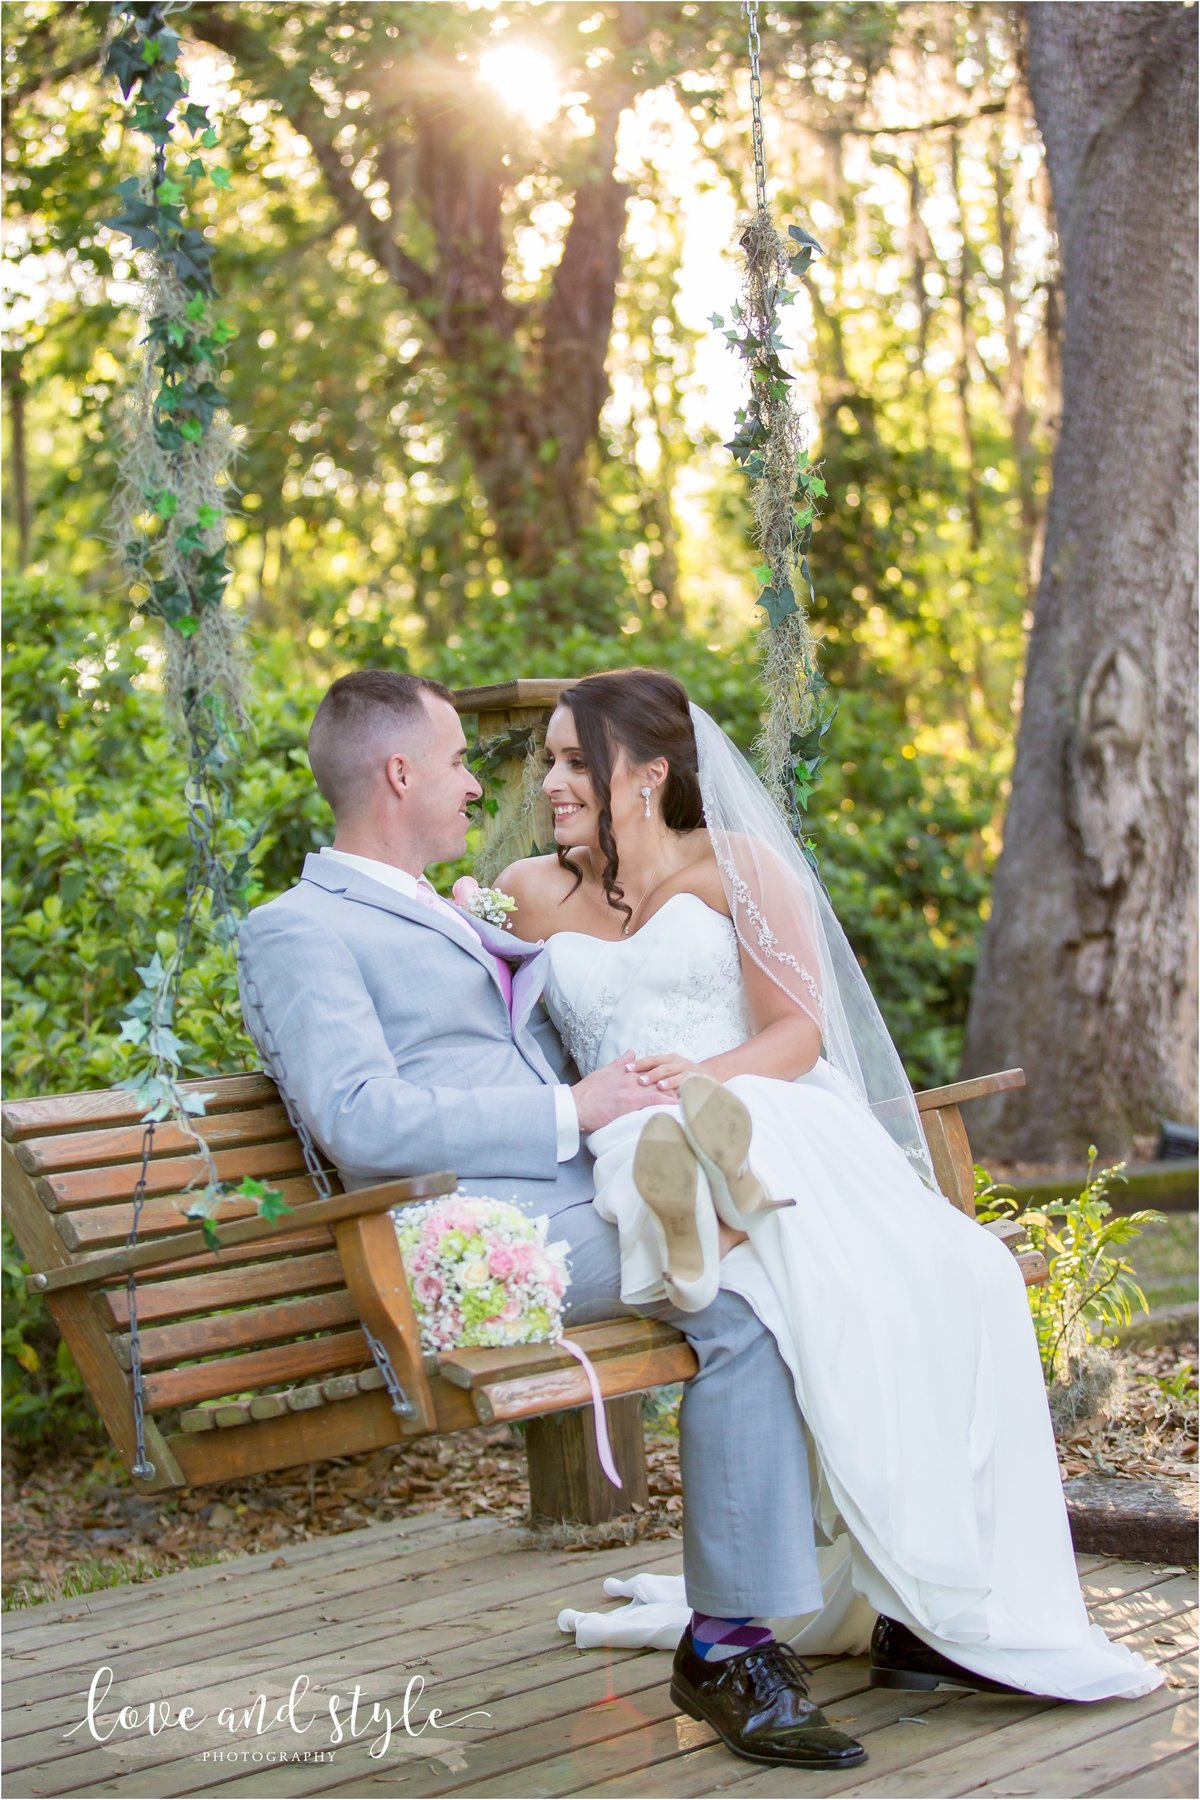 Bakers Ranch Florida  Wedding Photography, Bride and Groom on a tree swing